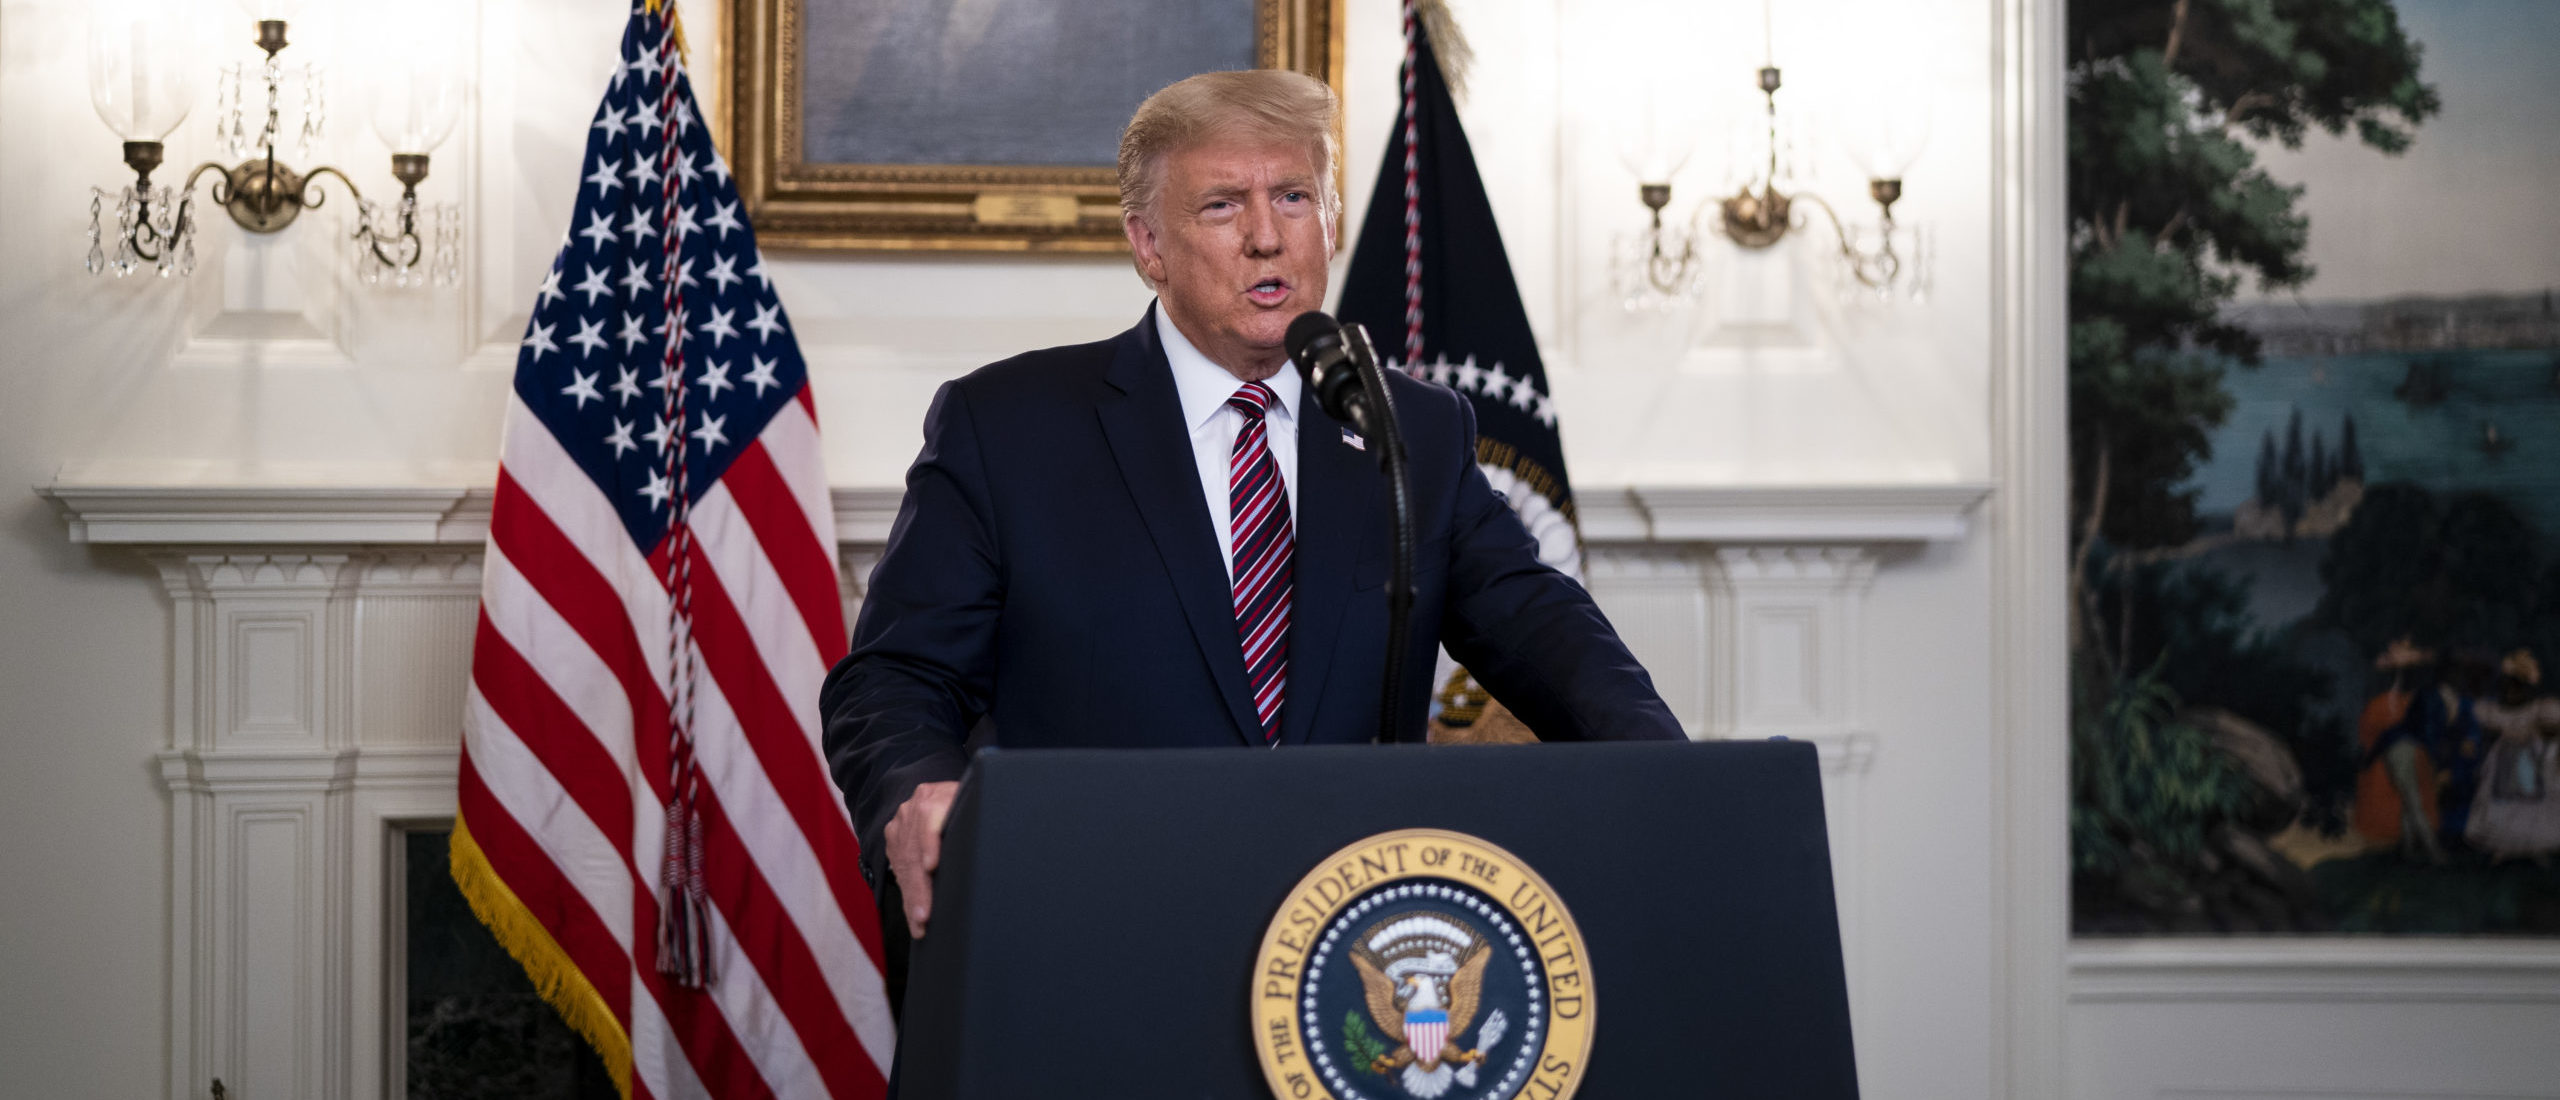 WASHINGTON, DC - SEPTEMBER 09: U.S. President Donald Trump reveals his list of potential Supreme Court nominees in the Diplomatic Reception Room of the White House on September 9, 2020 in Washington, DC. Trump also fielded questions about the coronavirus and Bob Woodward's new book about him. (Photo by Doug Mills-Pool/Getty Images)